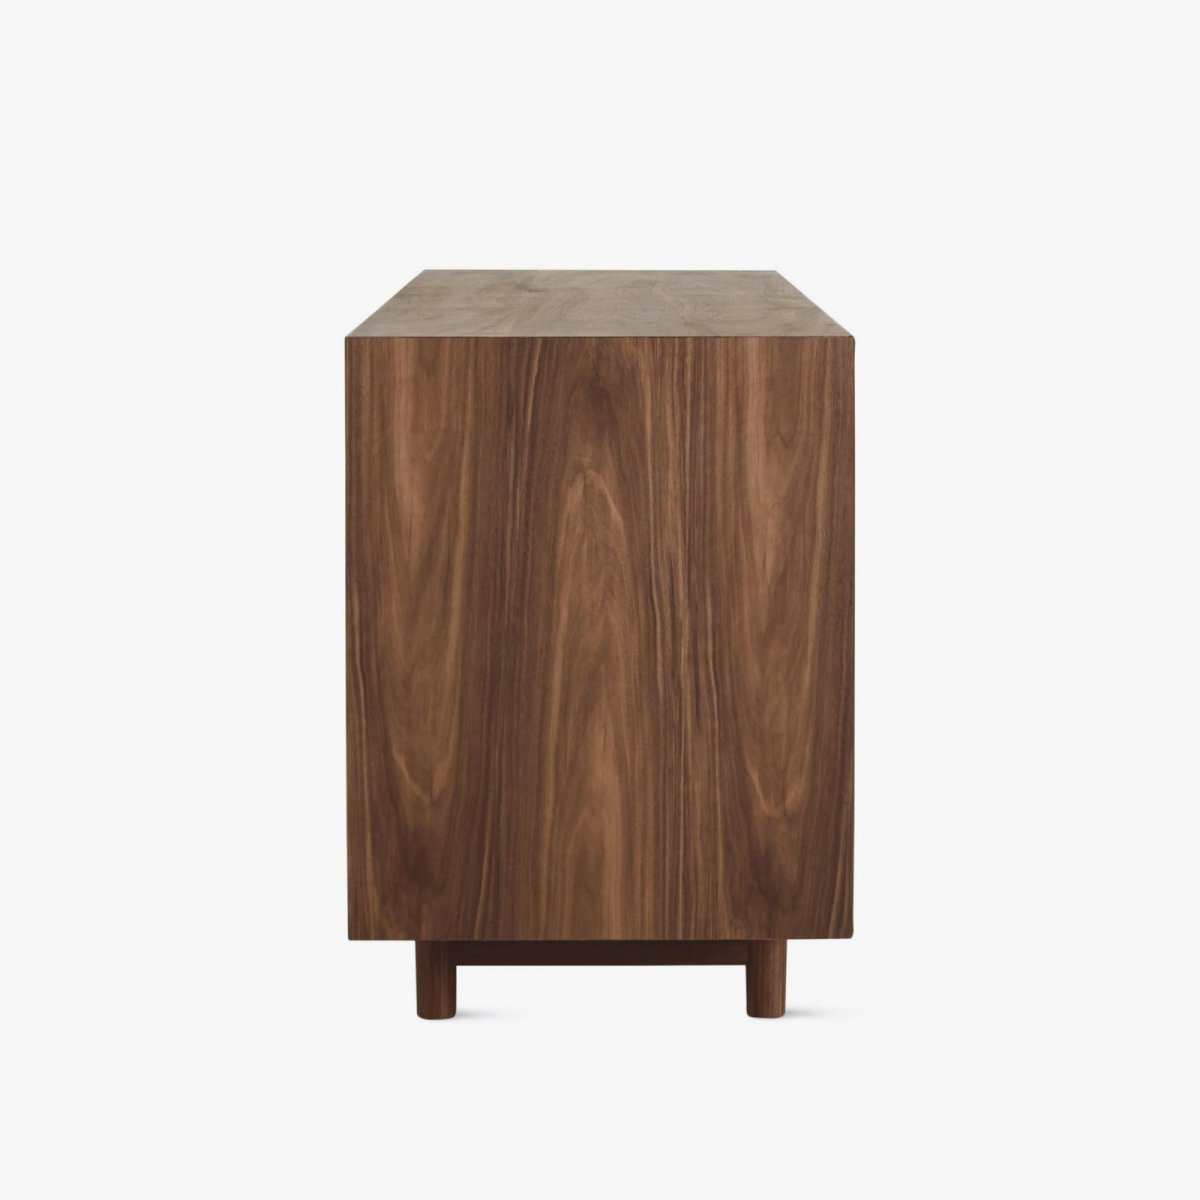 Edel Credenza, walnut, side view.